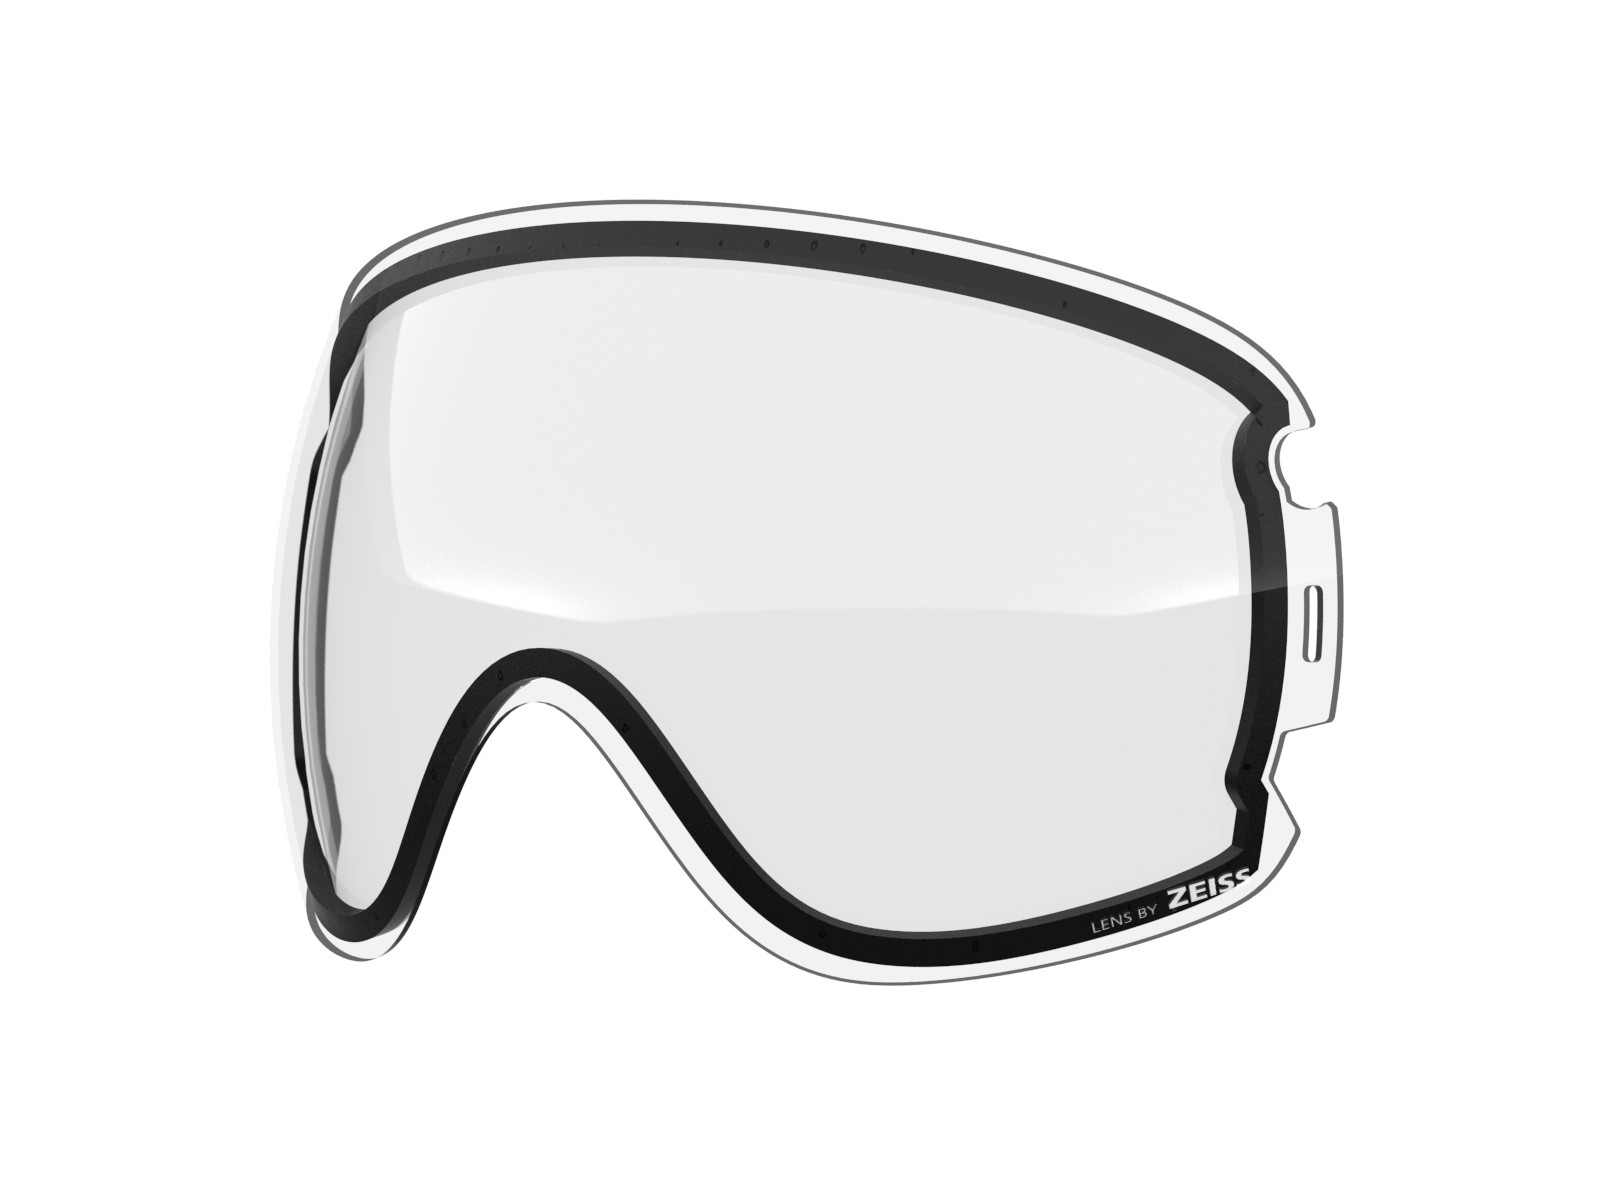 Clear lens for Lente per Open xl goggle